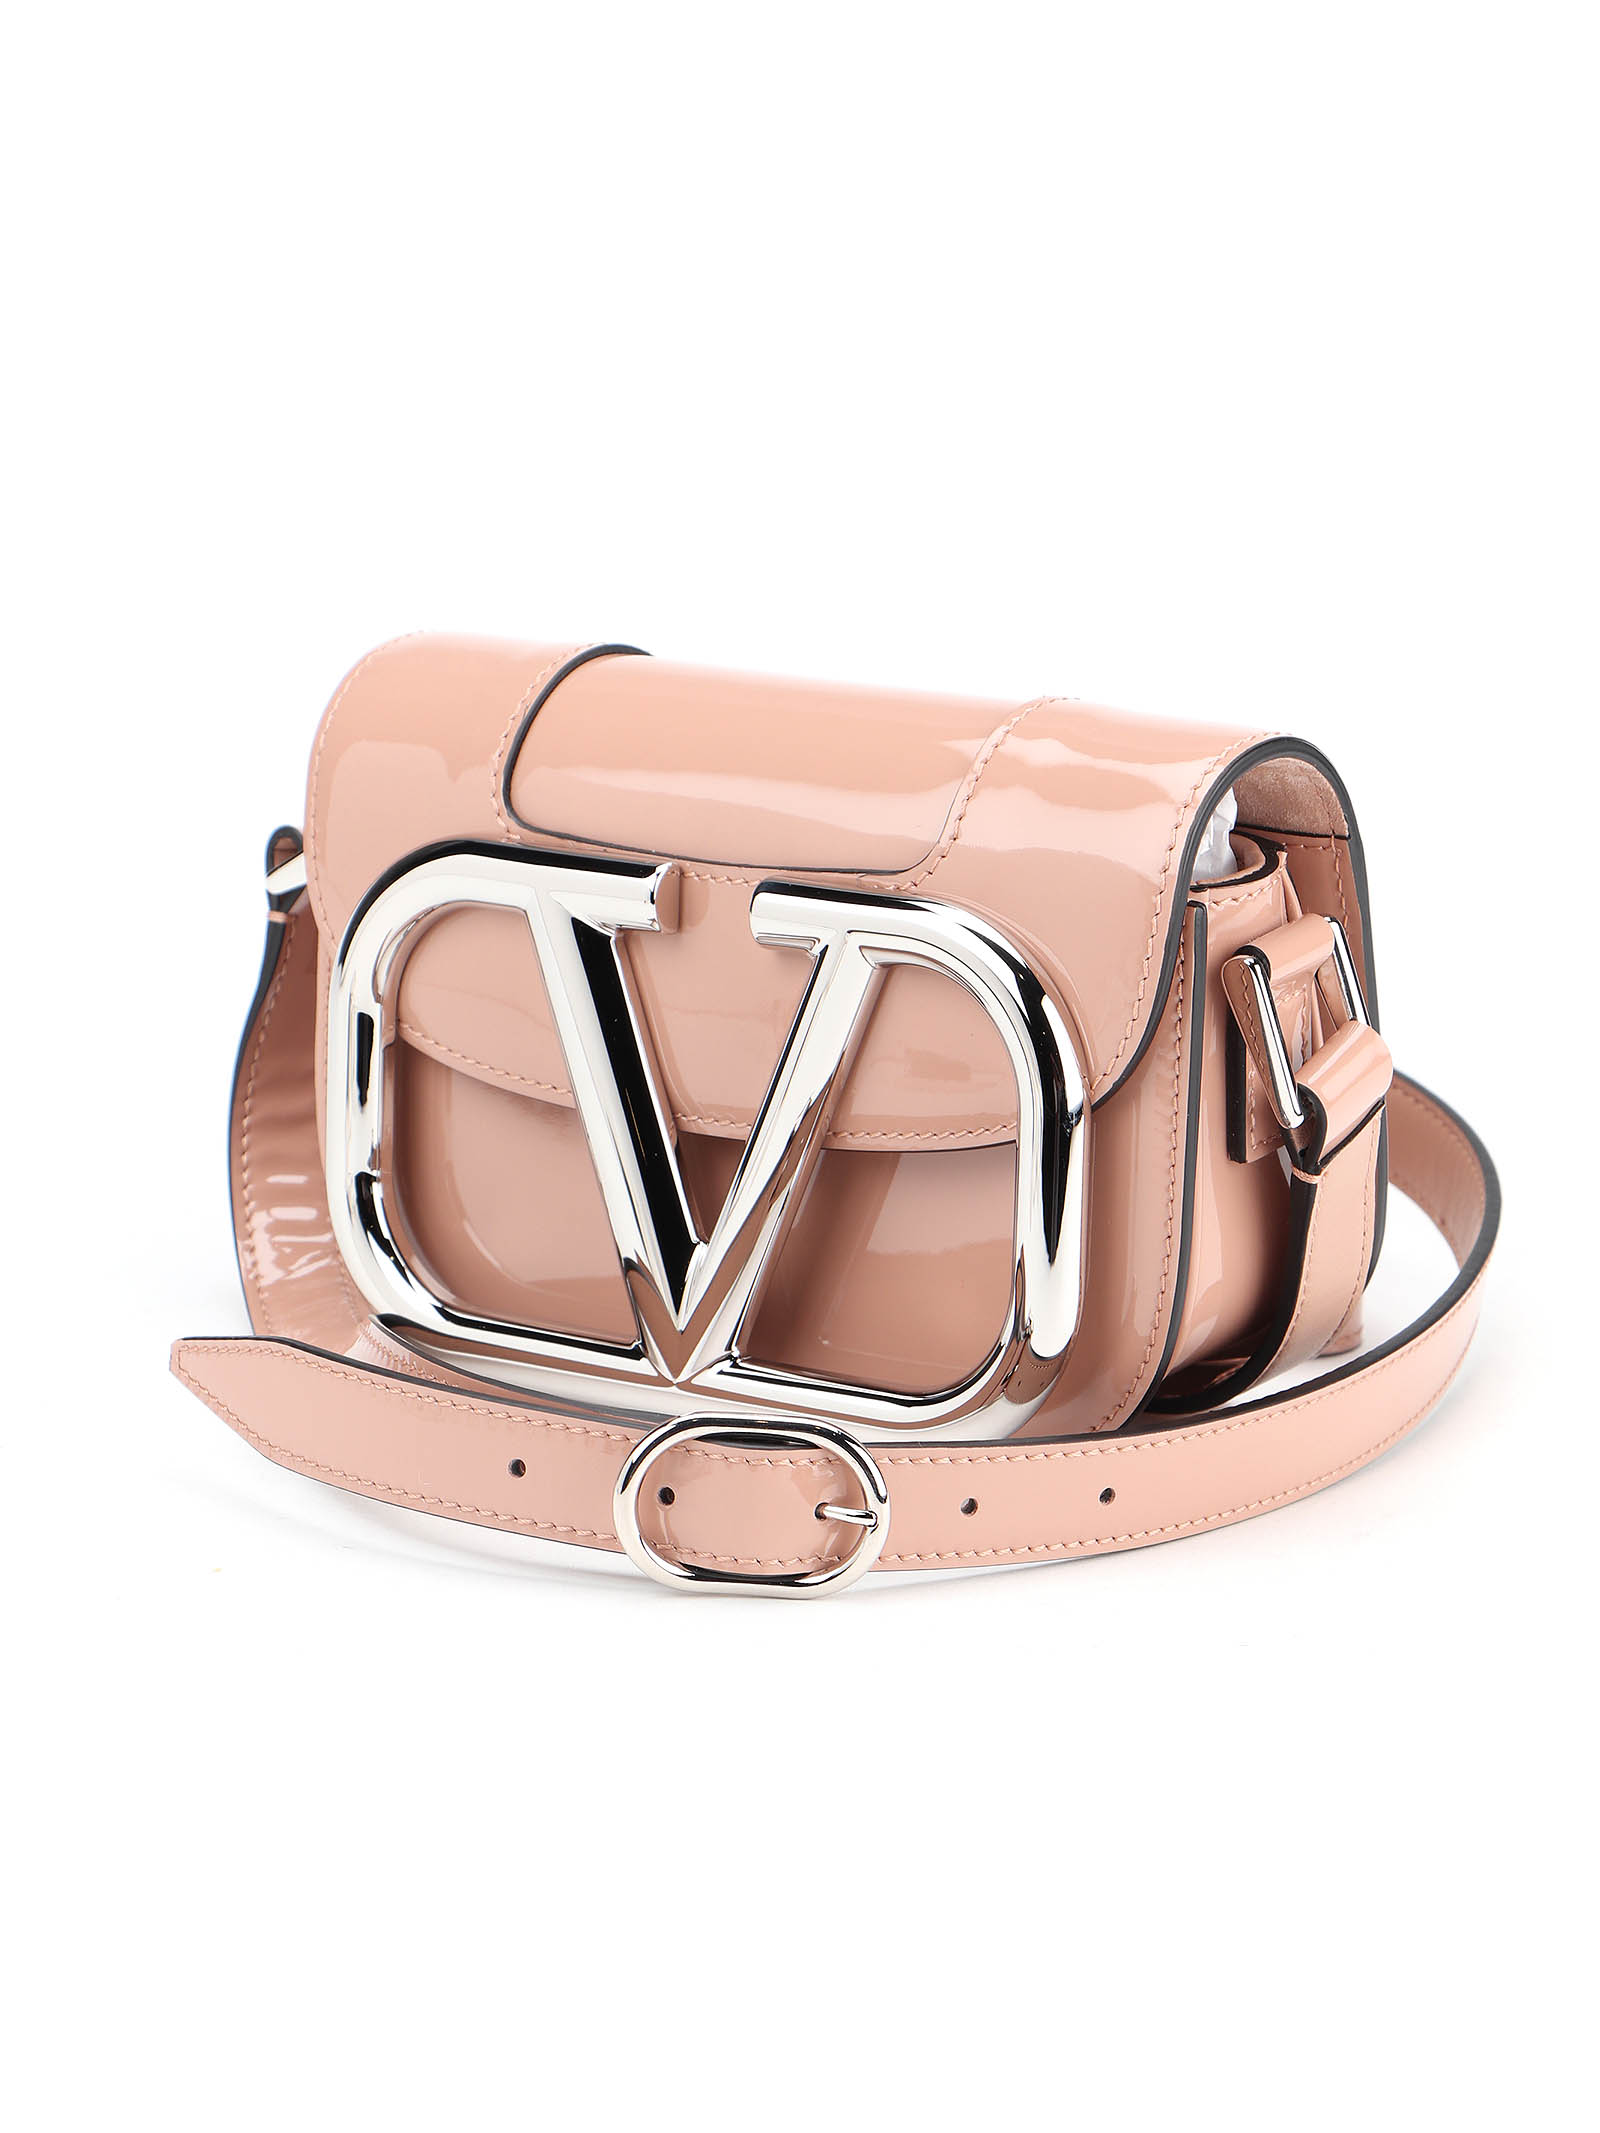 Picture of Valentino Garavani | Vlogo Small Shoulder Bag